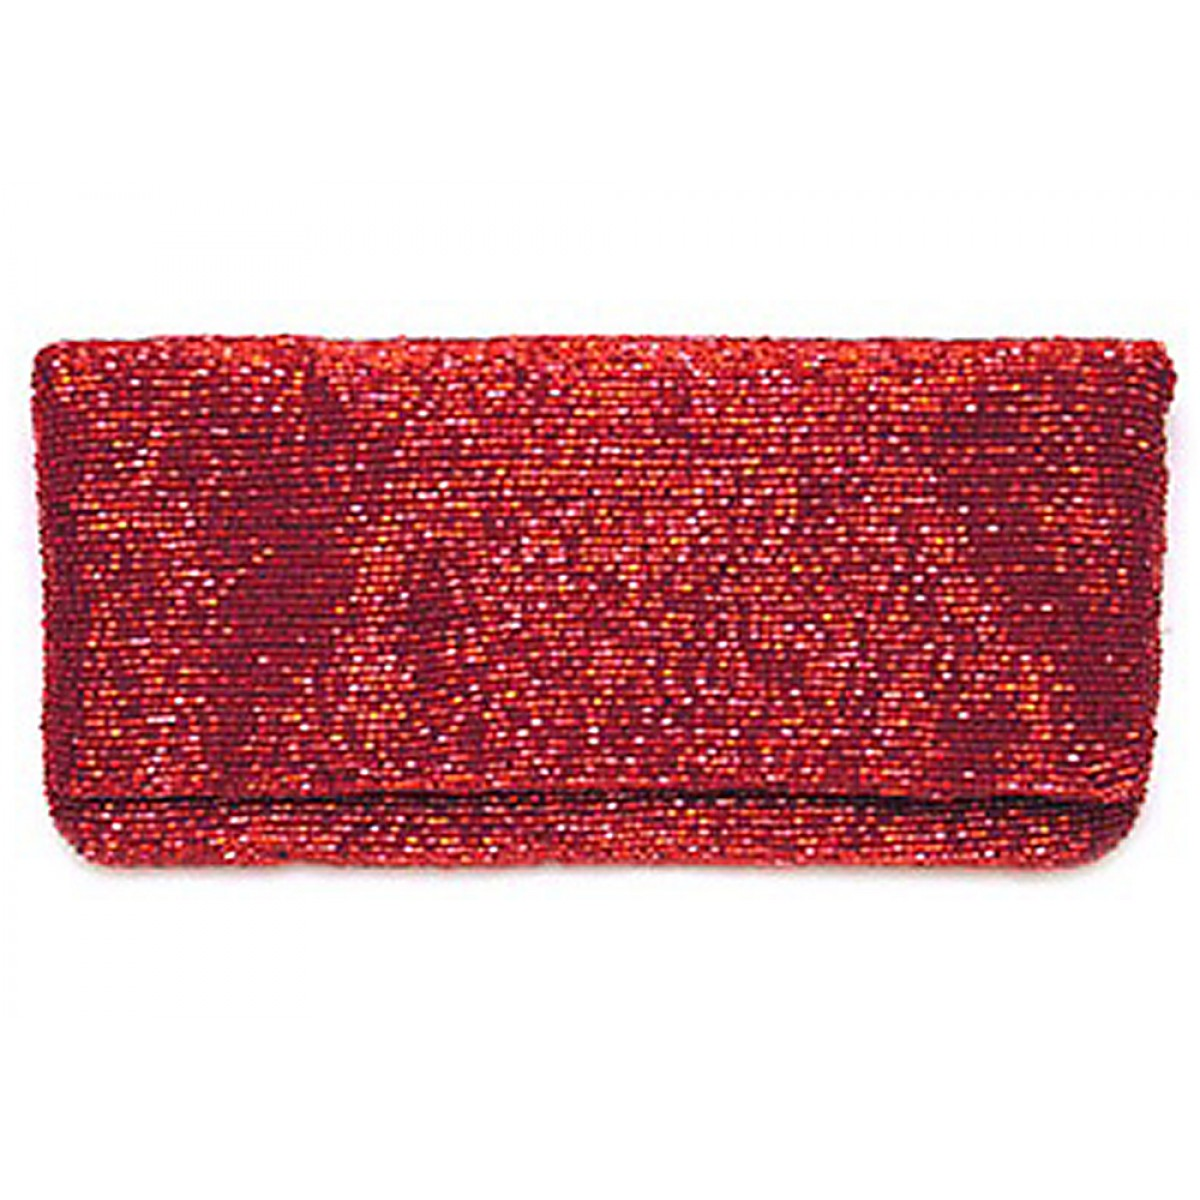 Fully Beaded Bag